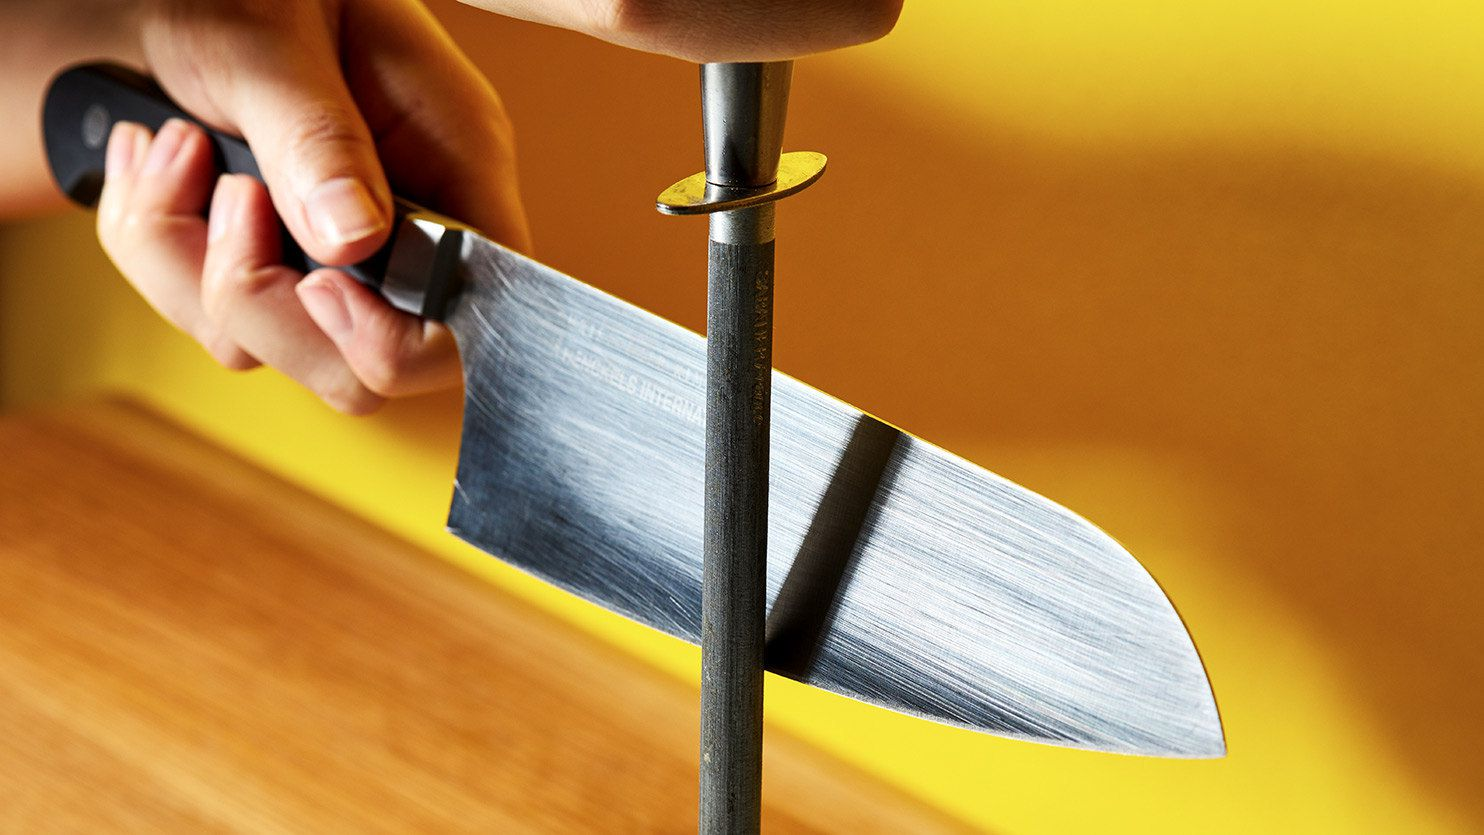 good kitchen knives samsung appliance reviews how to sharpen your the washington post stacy zarin goldberg for